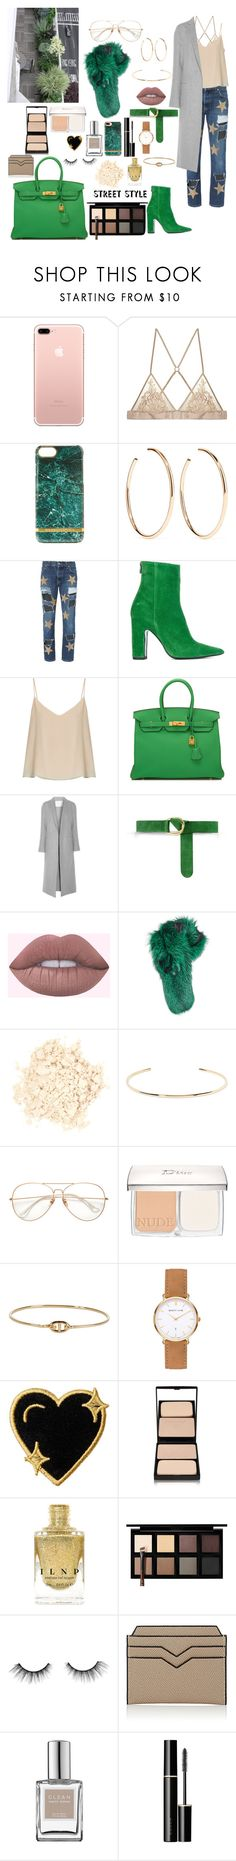 """""""Jealousy"""" by mylano ❤ liked on Polyvore featuring Richmond & Finch, Jennifer Fisher, History Repeats, Barbara Bui, Raey, Hermès, ADAM, Lilly e Violetta, Laura Mercier and Christian Dior"""